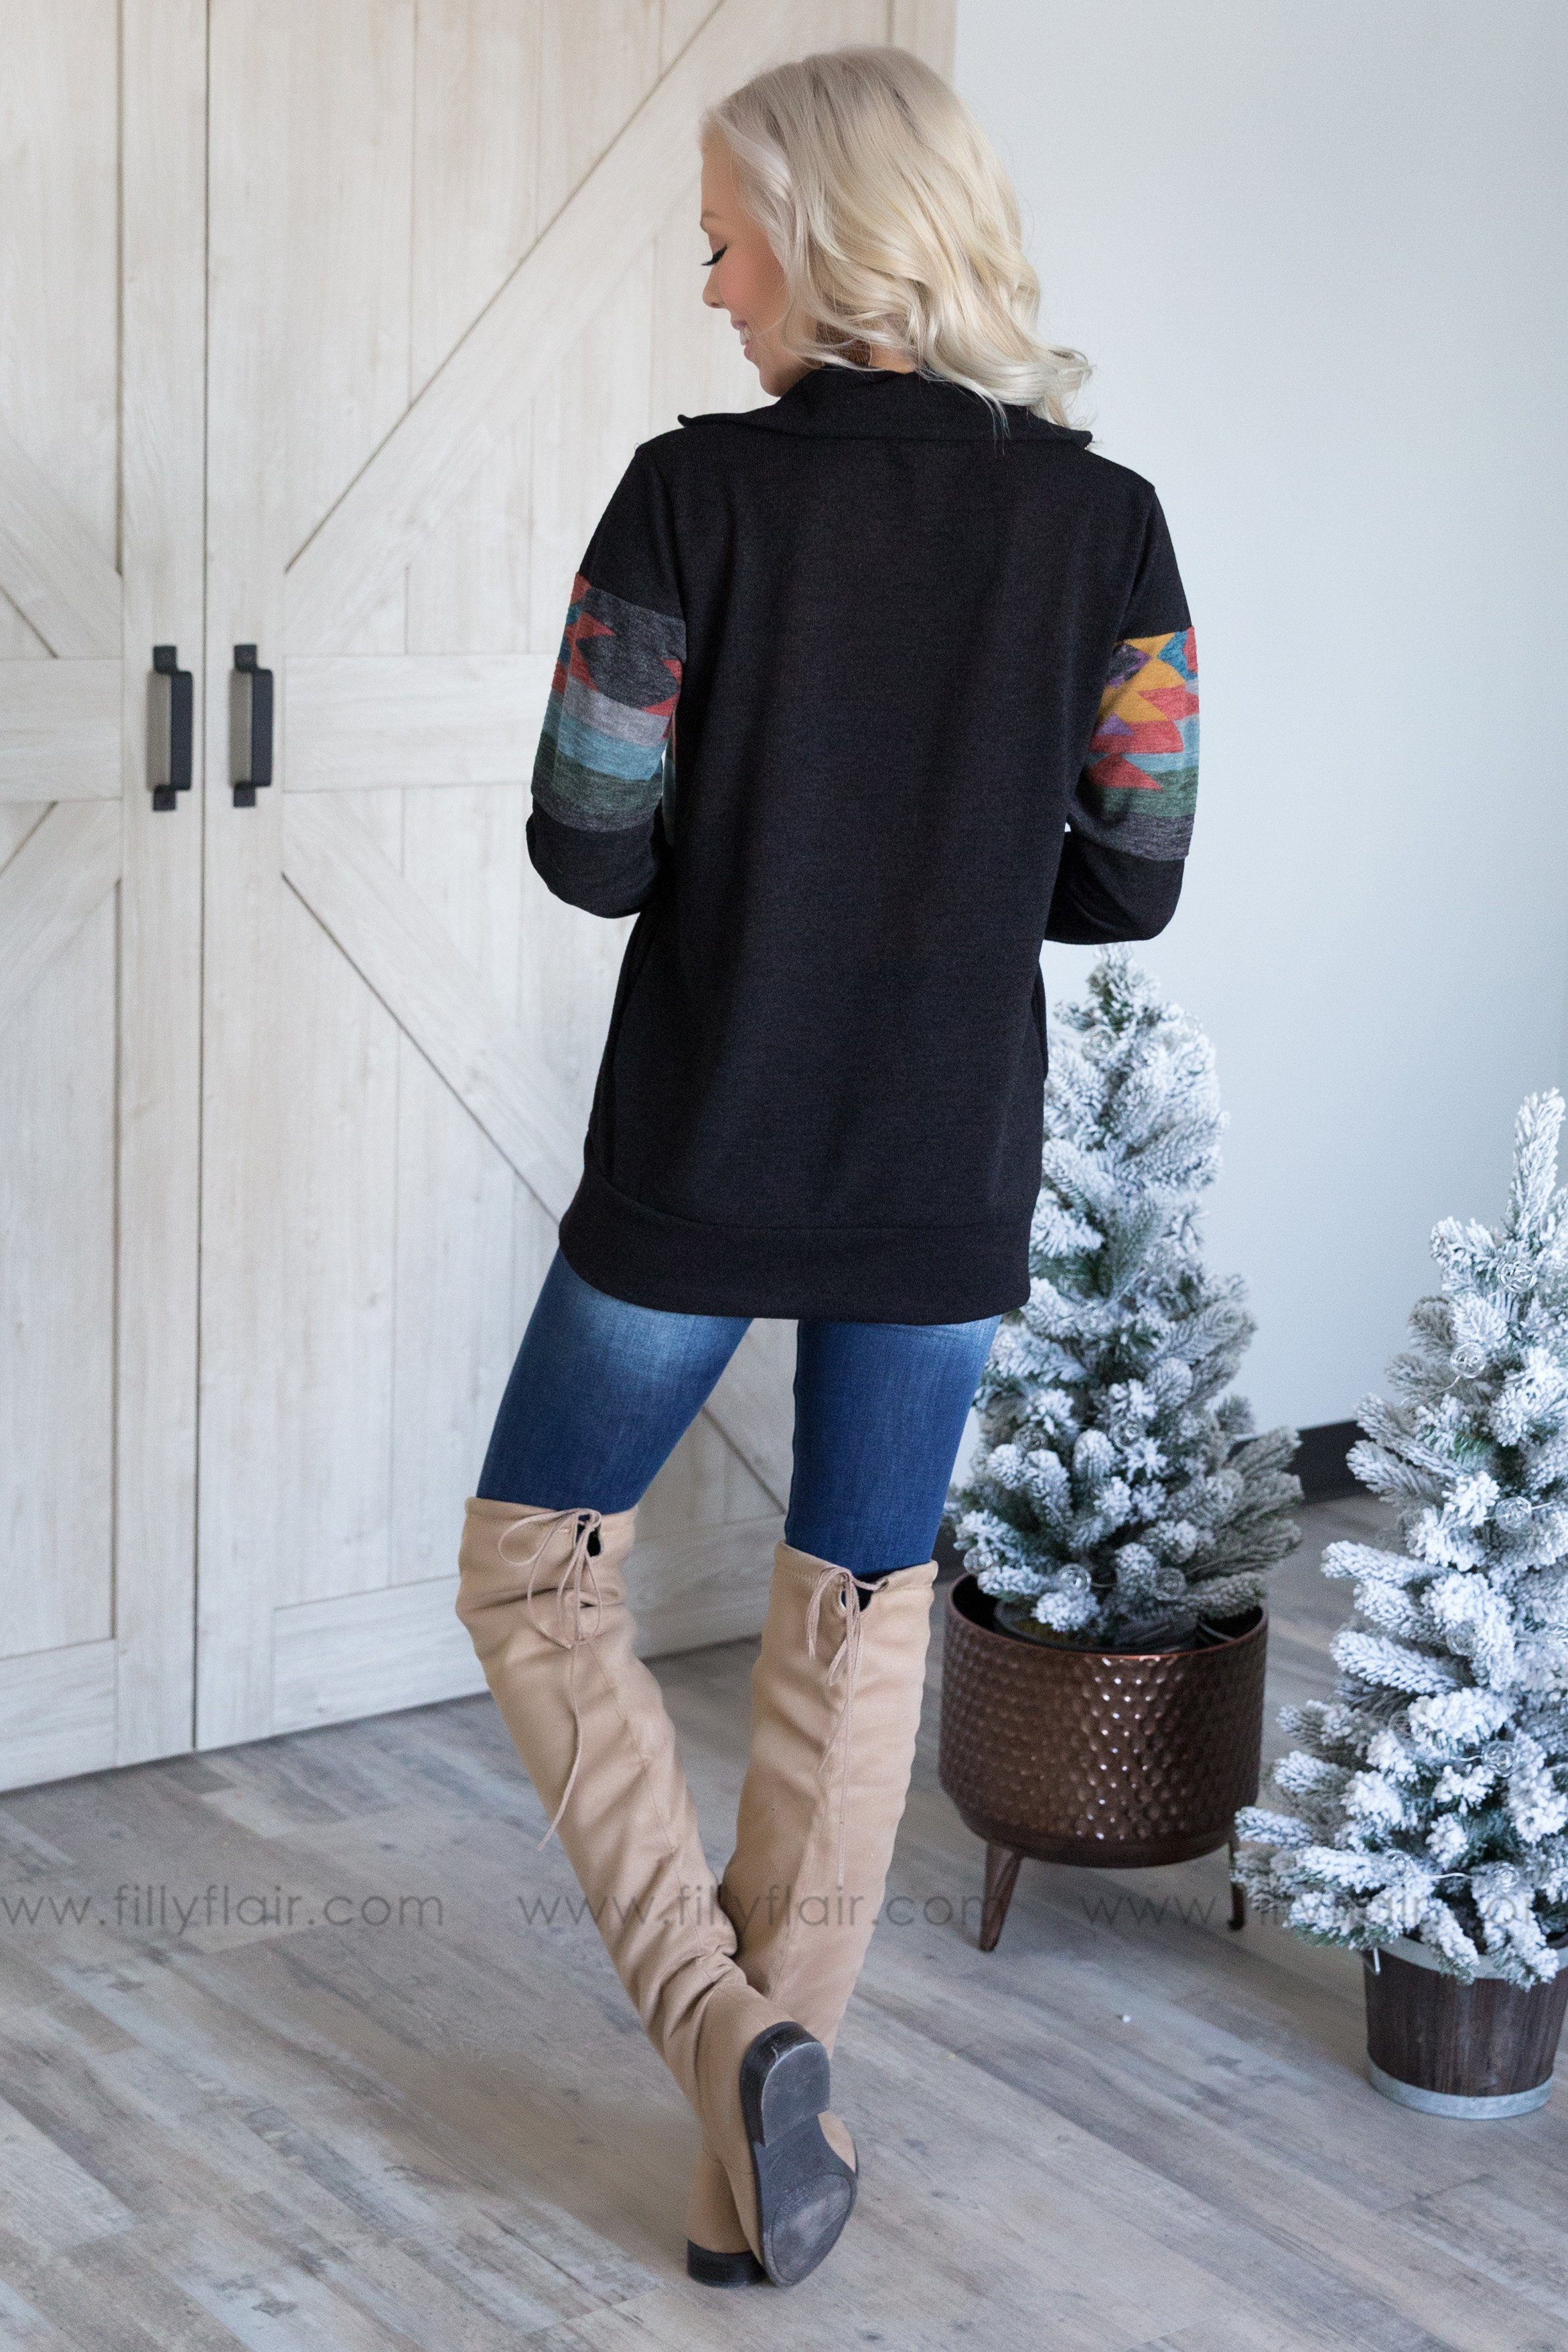 Going Places Aztec Print Half Zip Long Sleeve Top In Black - Filly Flair